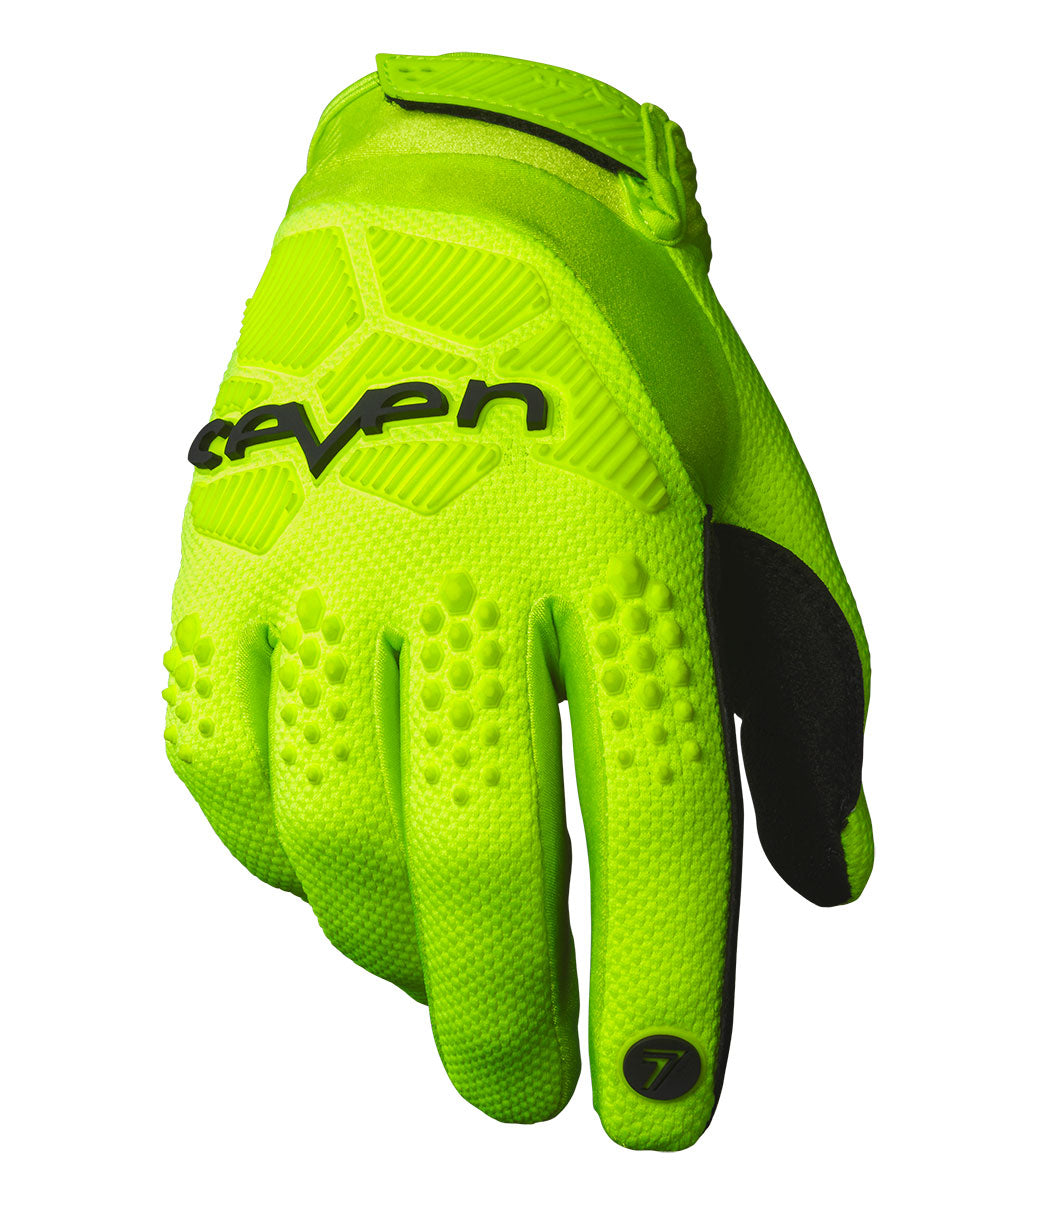 Rival Gloves - Flo Yellow